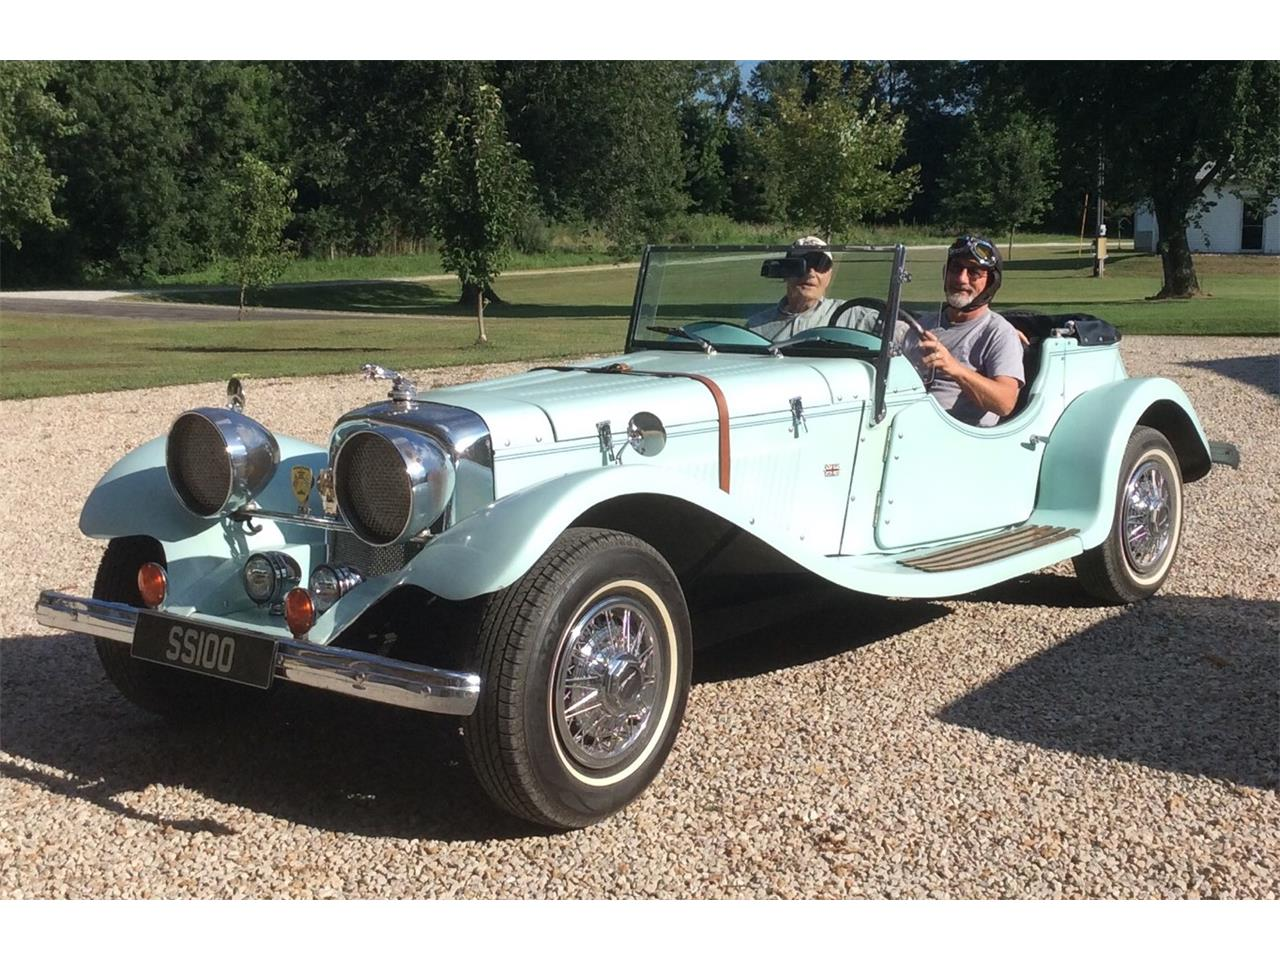 Large Picture of 1937 SS100 - $7,500.00 Offered by a Private Seller - QJQL